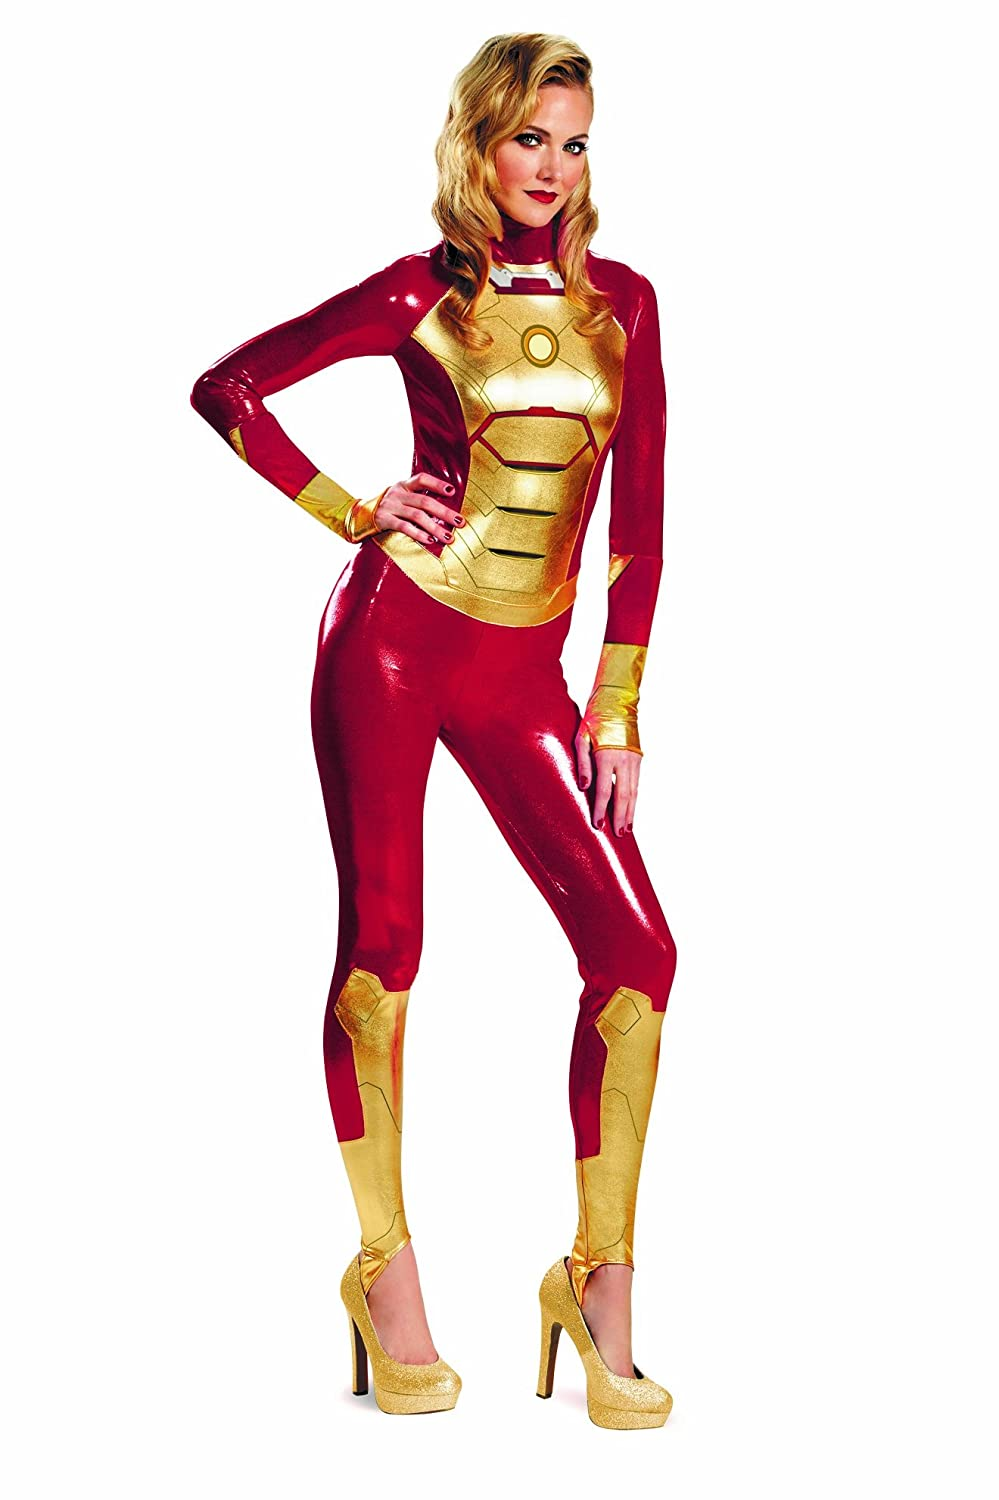 Amazon.com Disguise Marvel Iron Man 3 Mark 42 Lycra Sassy Womens Adult Bodysuit Costume Gold/Red Large/12-14 Clothing  sc 1 st  Amazon.com & Amazon.com: Disguise Marvel Iron Man 3 Mark 42 Lycra Sassy Womens ...